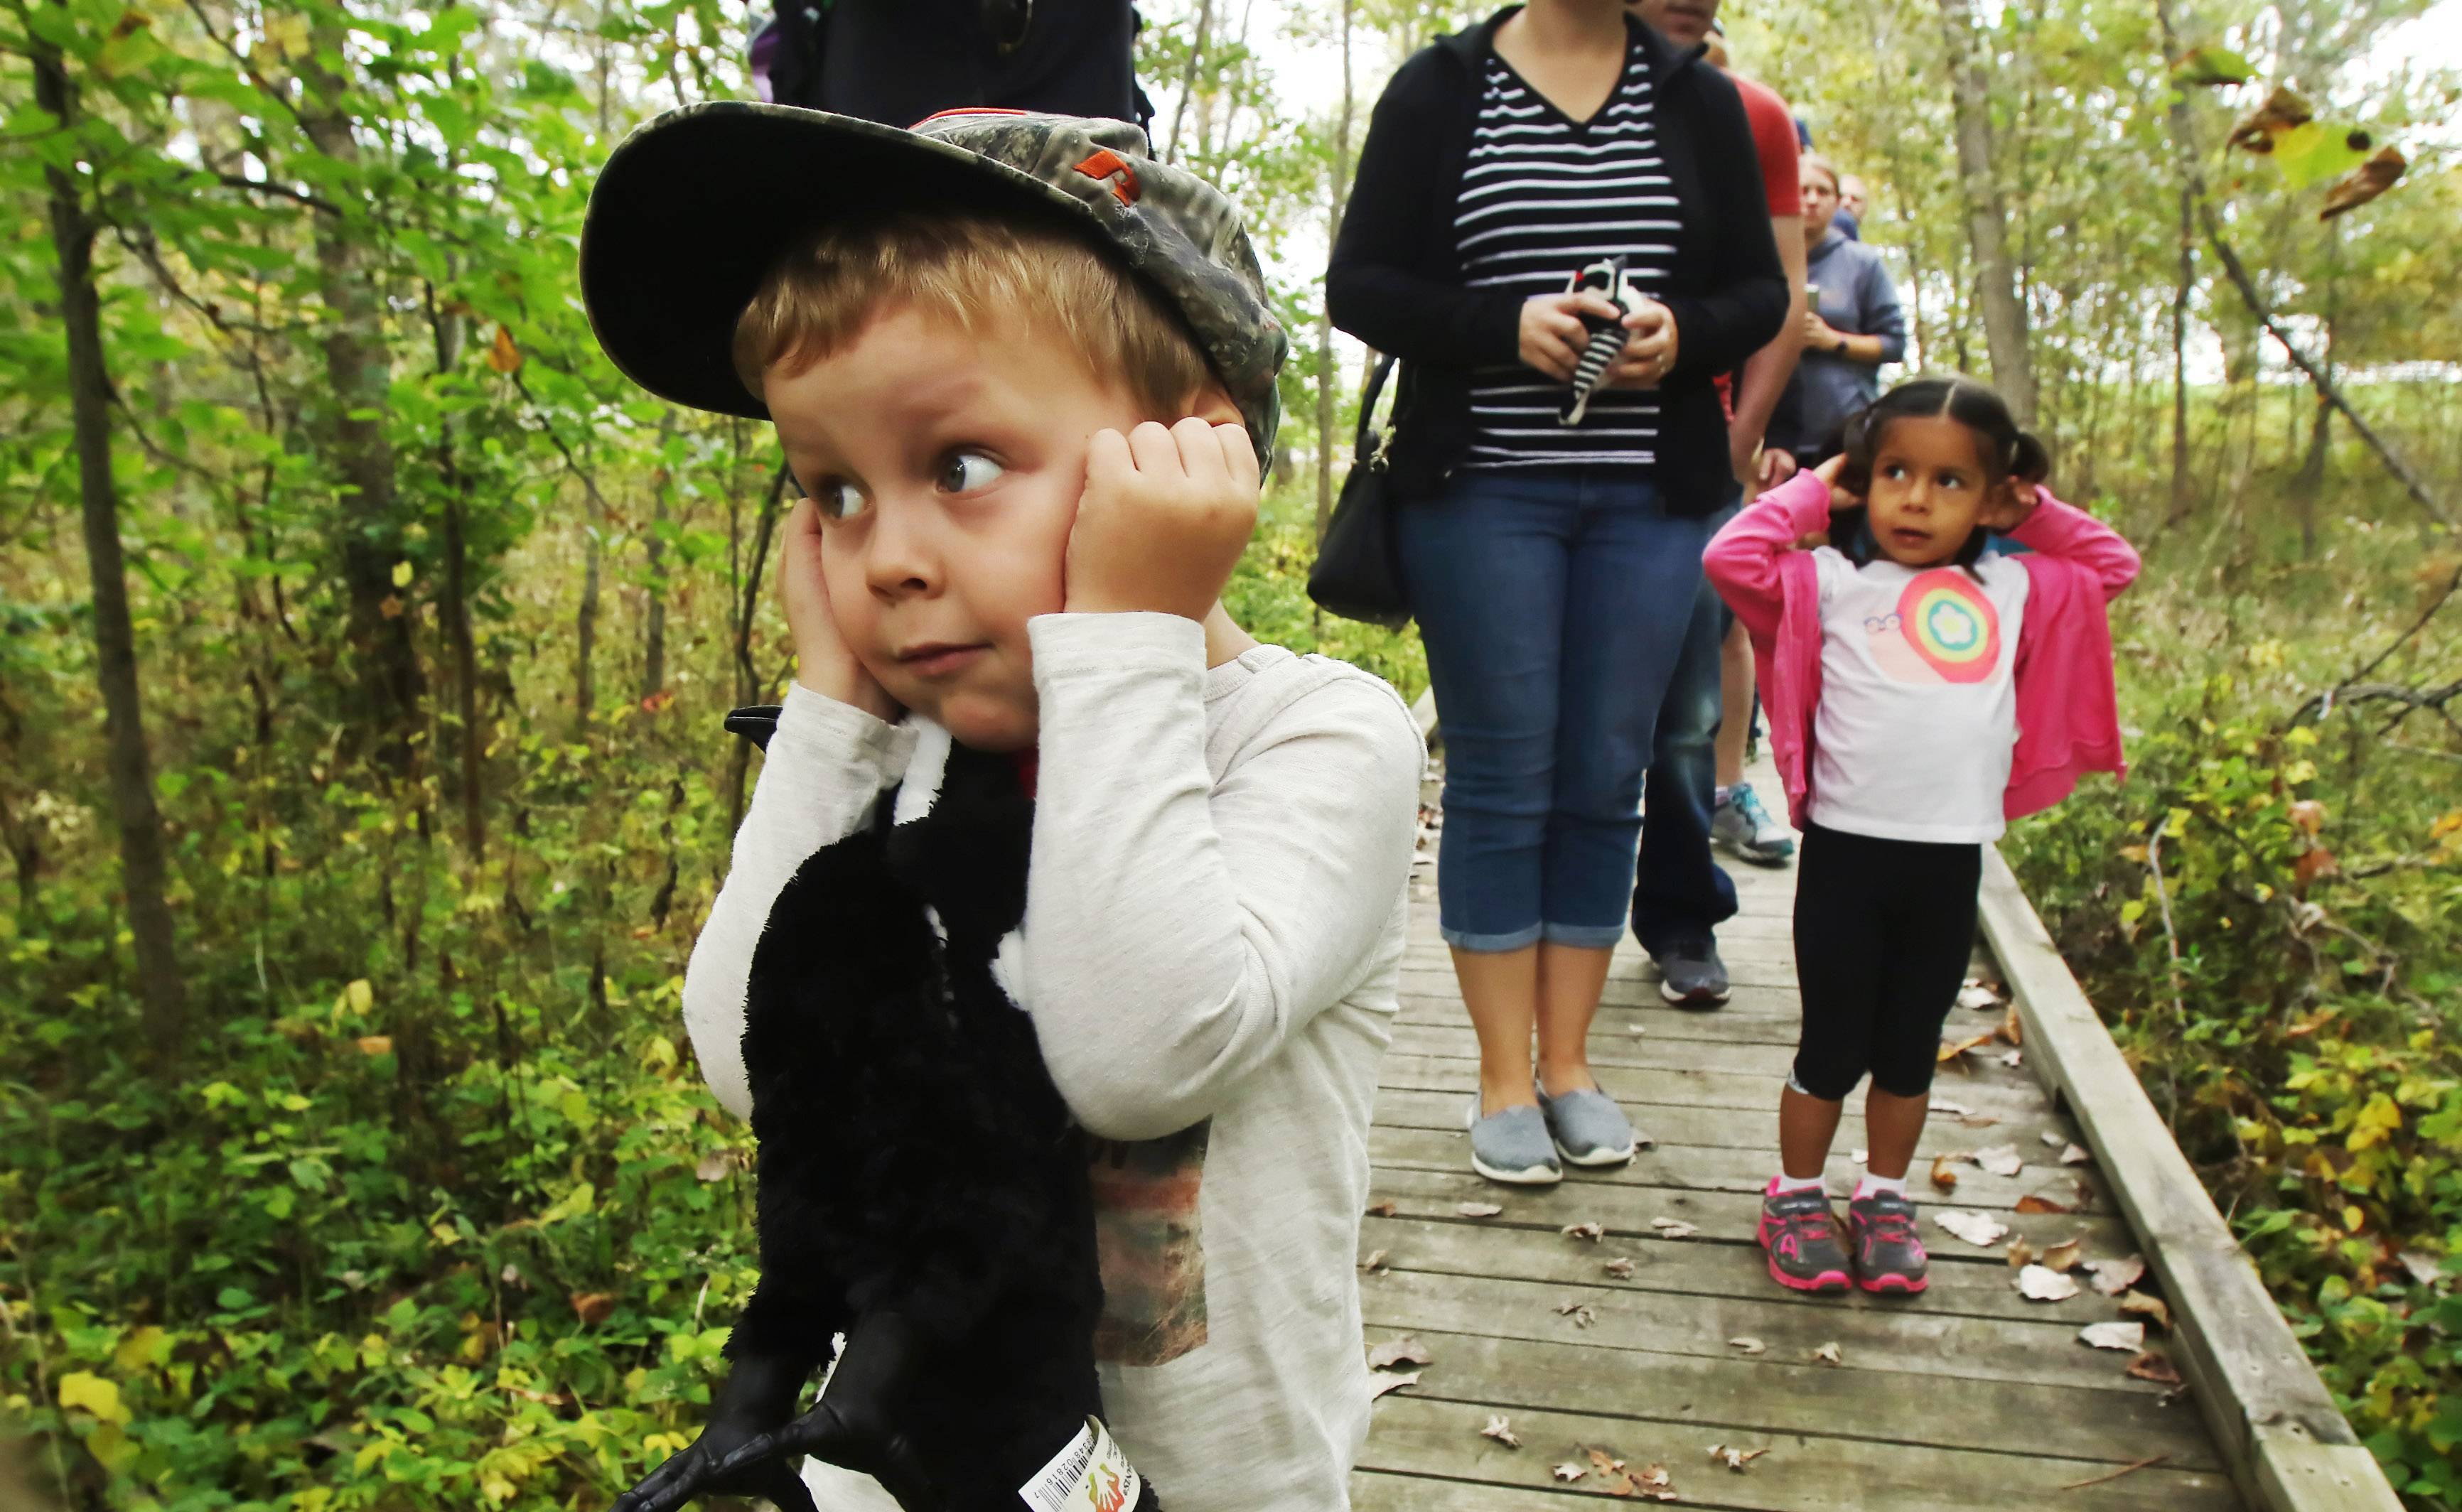 Benjamin Meek, 5, and Sofie Gallegos, 3, both of Lake Villa, bring their hands to their ears listening for bird calls during the Hikin' Tykes: Woodpeckers program at Edward L. Ryerson Conservation Area on Tuesday. Children, ages 2-5, learned about woodpeckers as they hiked in the woods and later worked on building birdhouses with parents and caregivers.